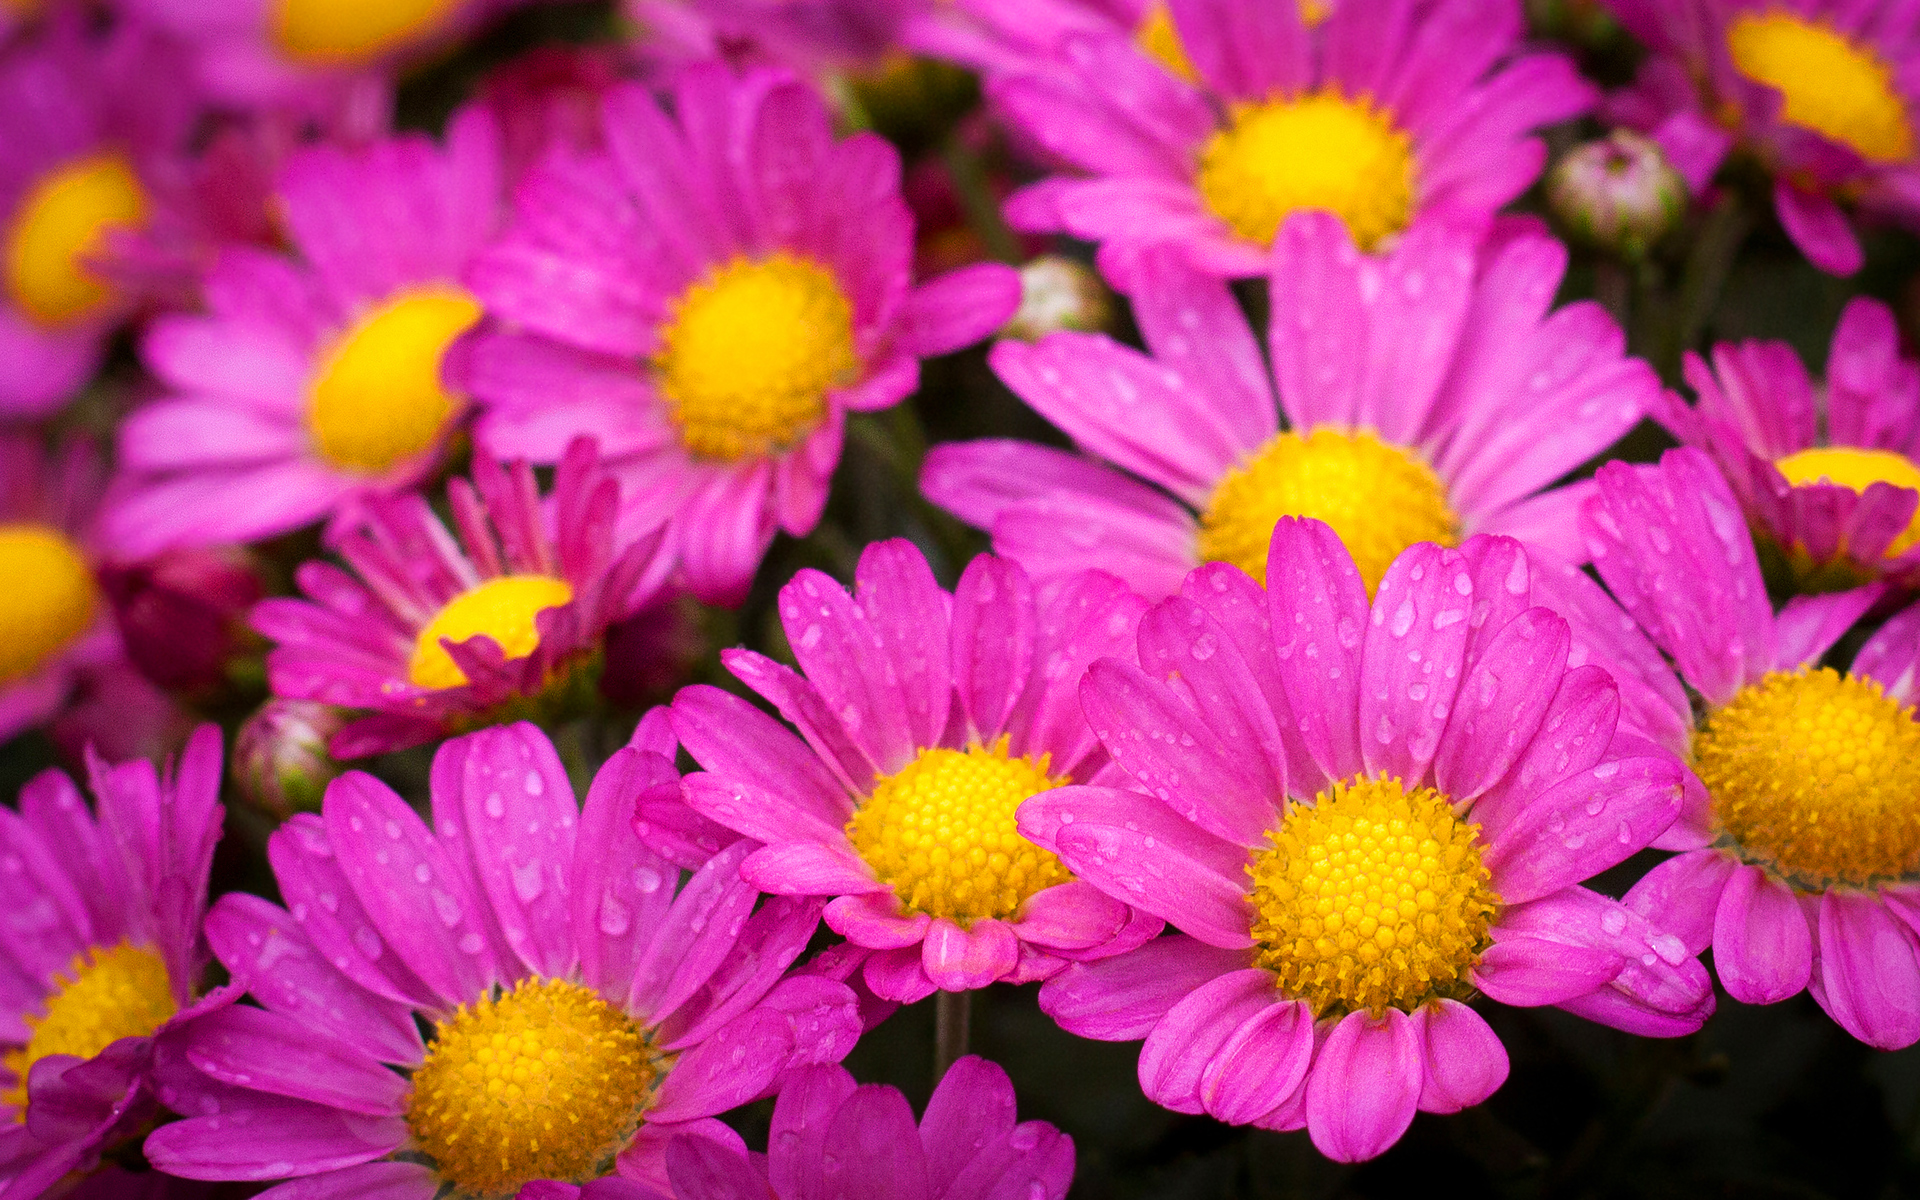 Wet yellow pink flowers